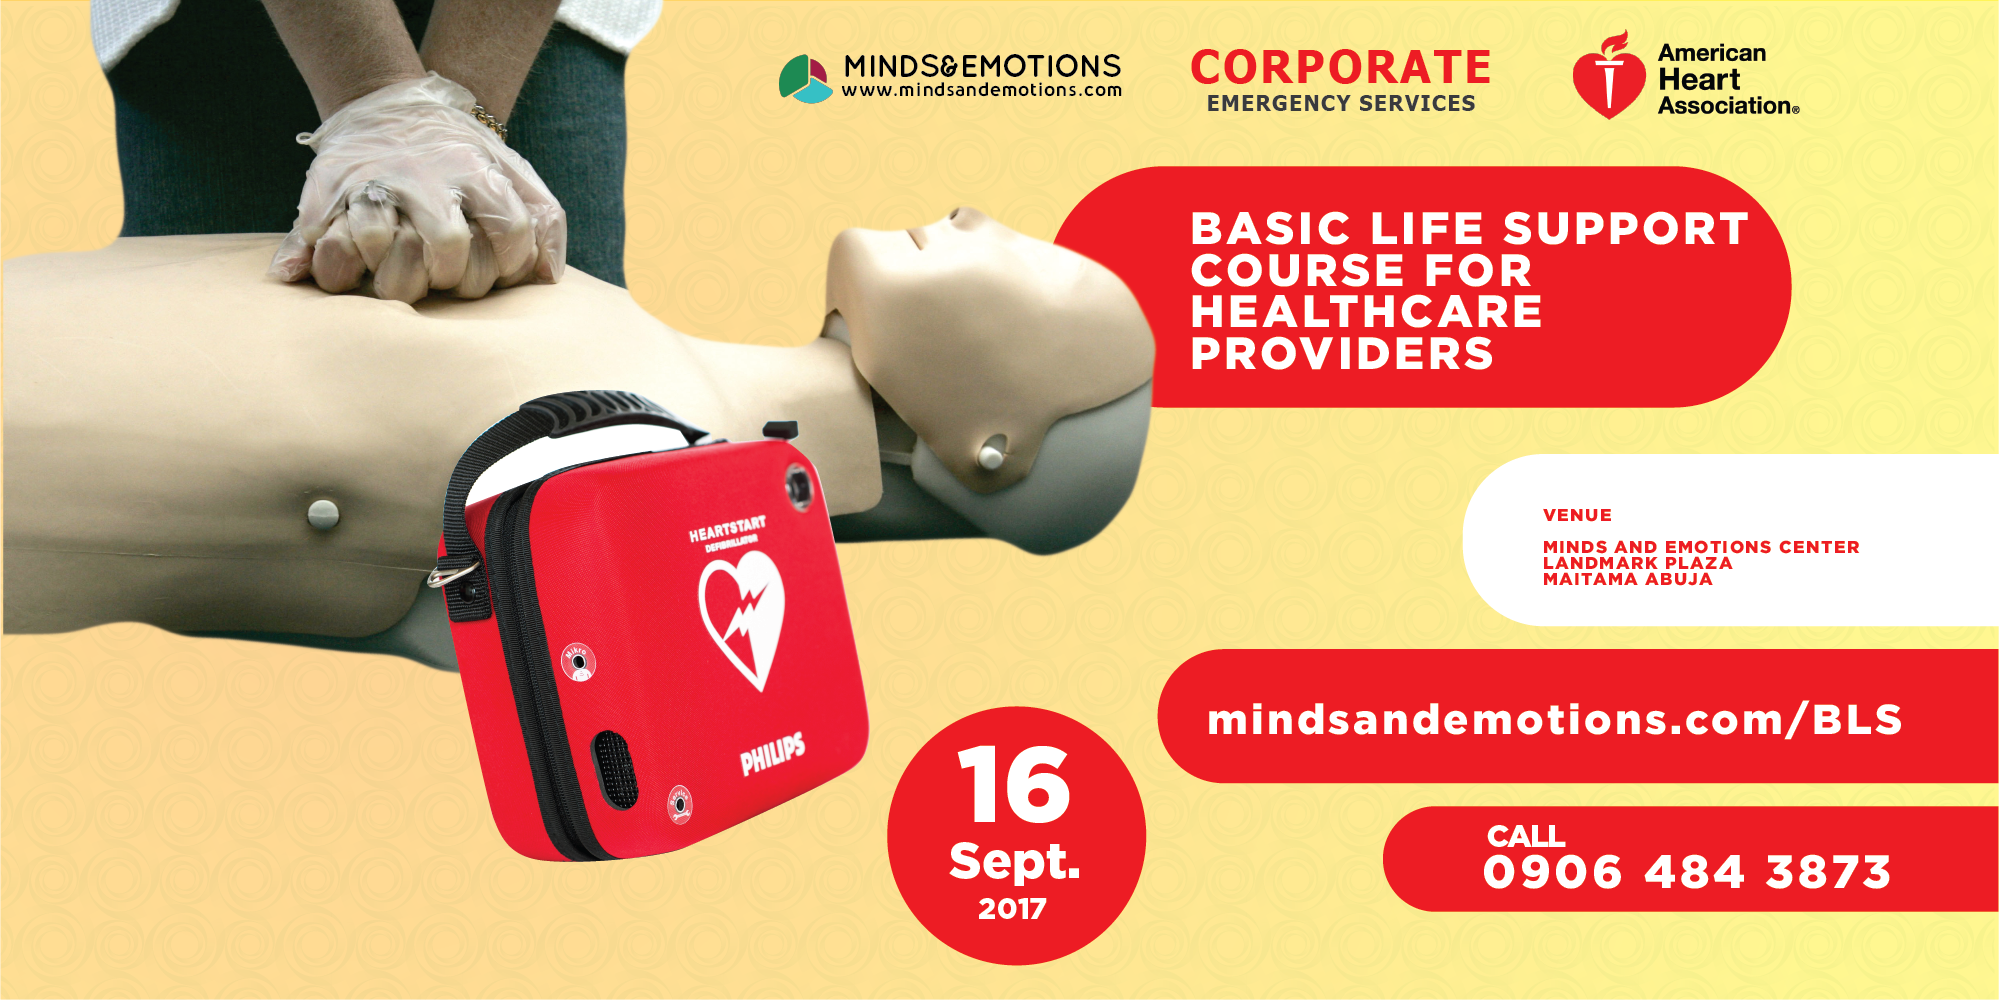 Basic Life Support Certification - Minds and Emotions